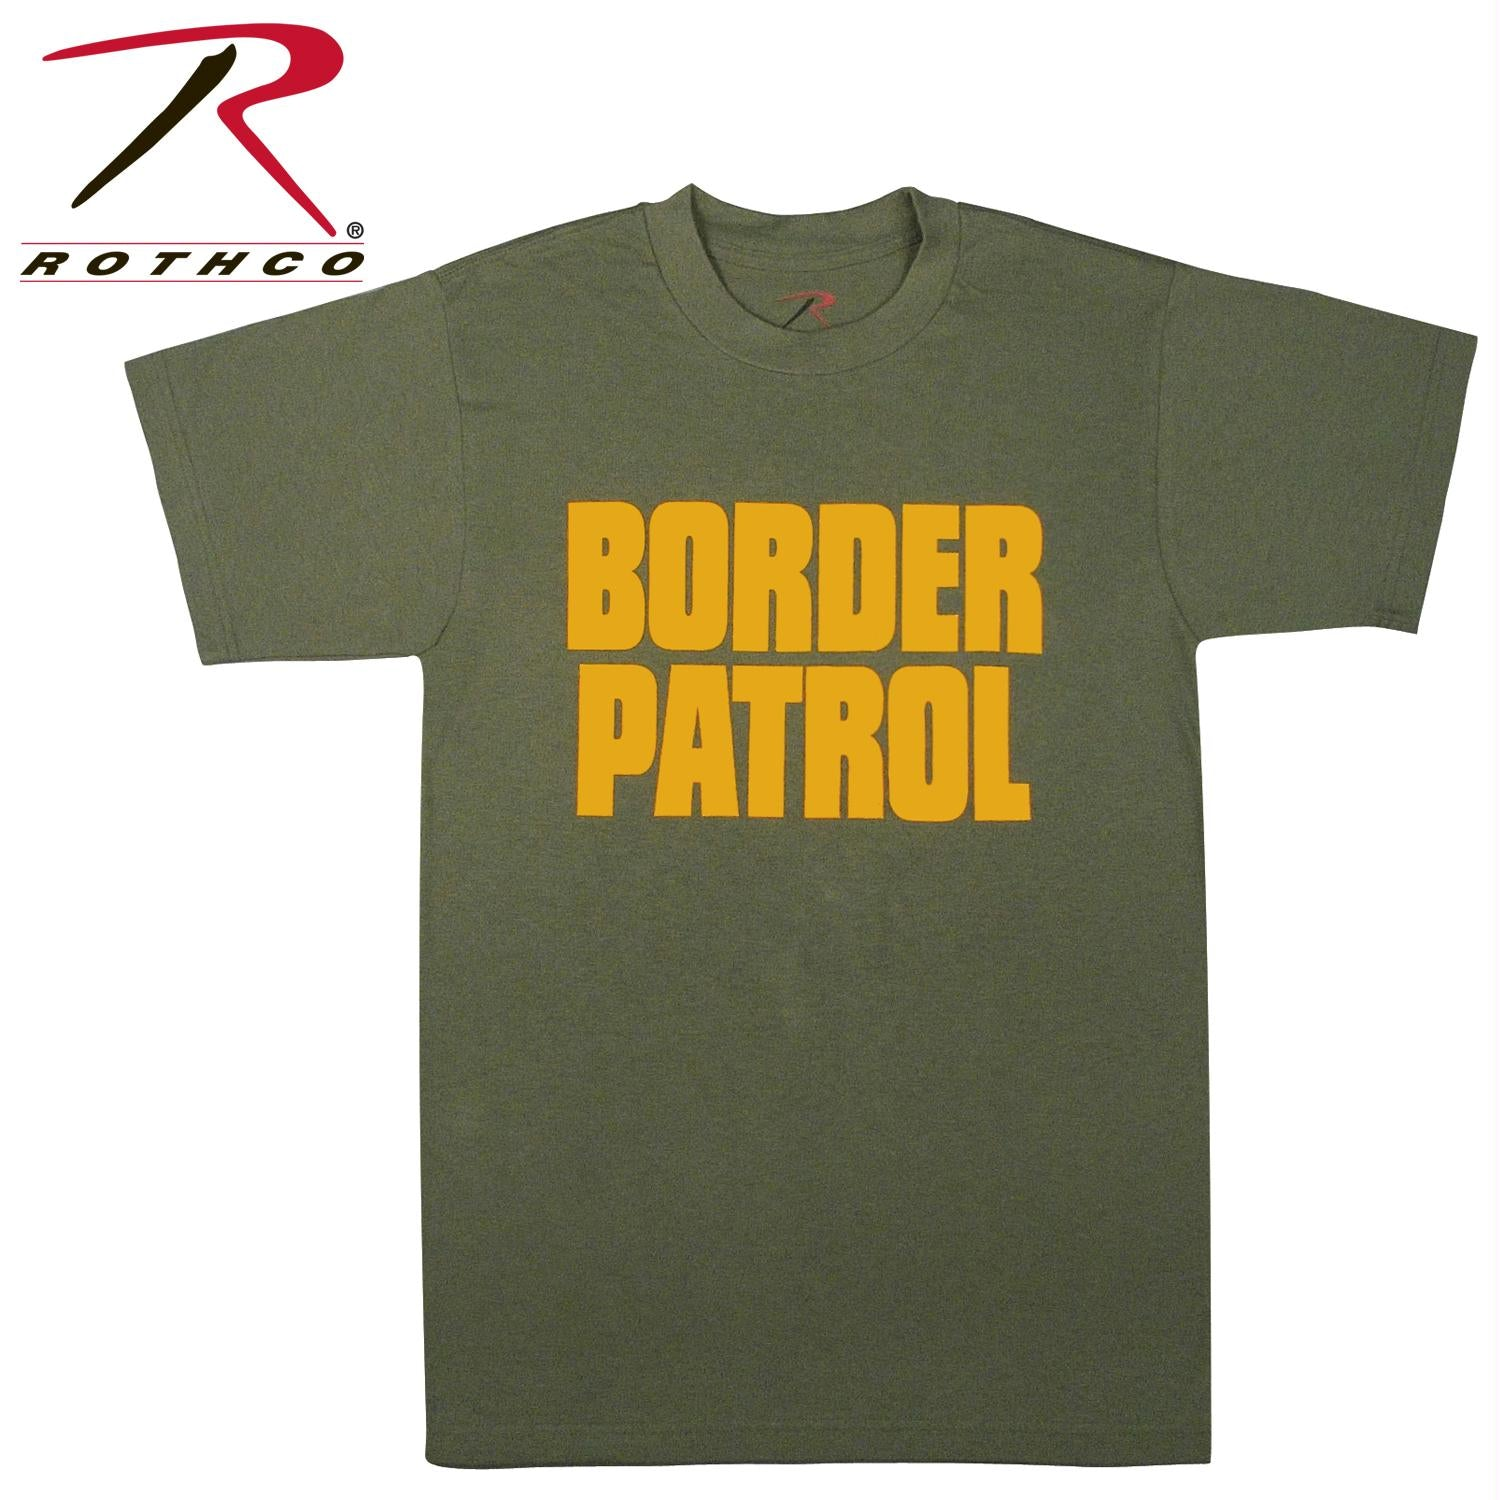 Rothco 2-Sided Border Patrol T-Shirt - M